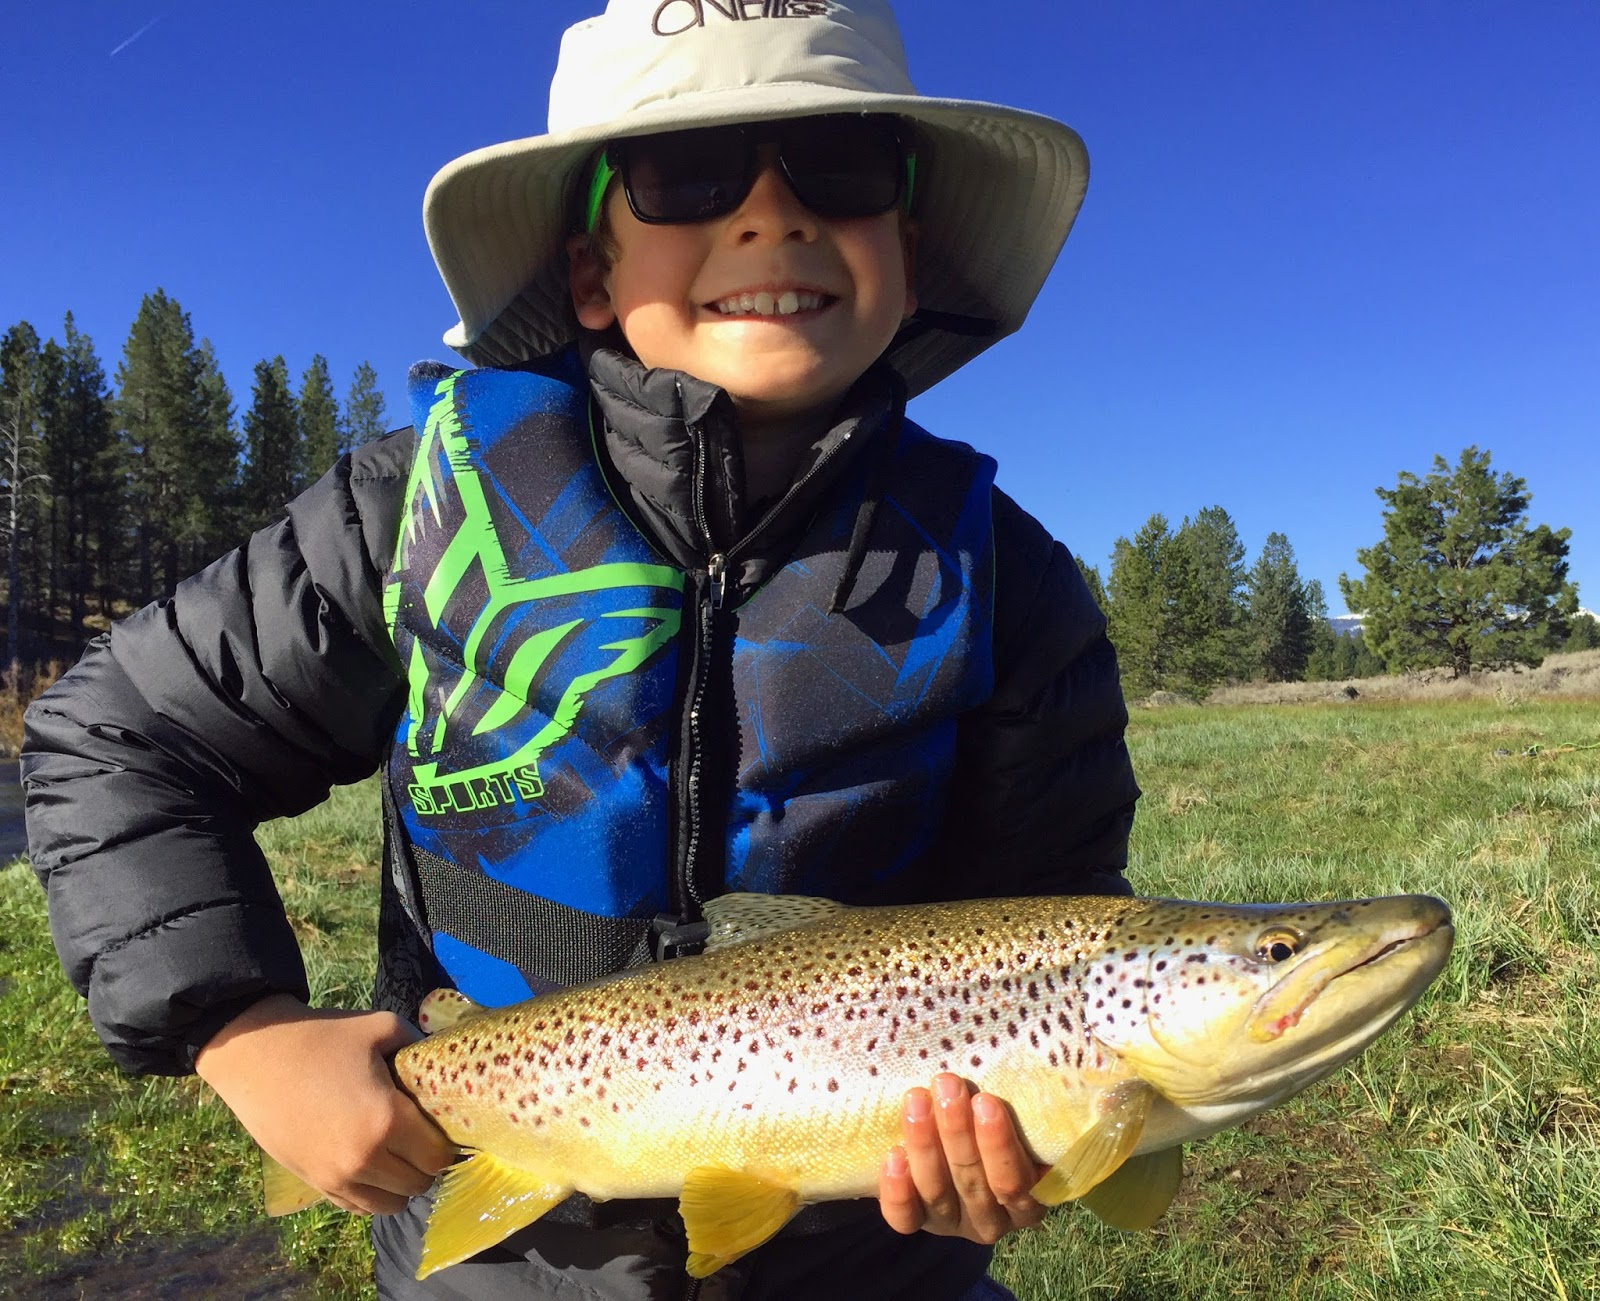 Truckee river fishing report 5 3 2017 article wed 03 for Truckee fishing report